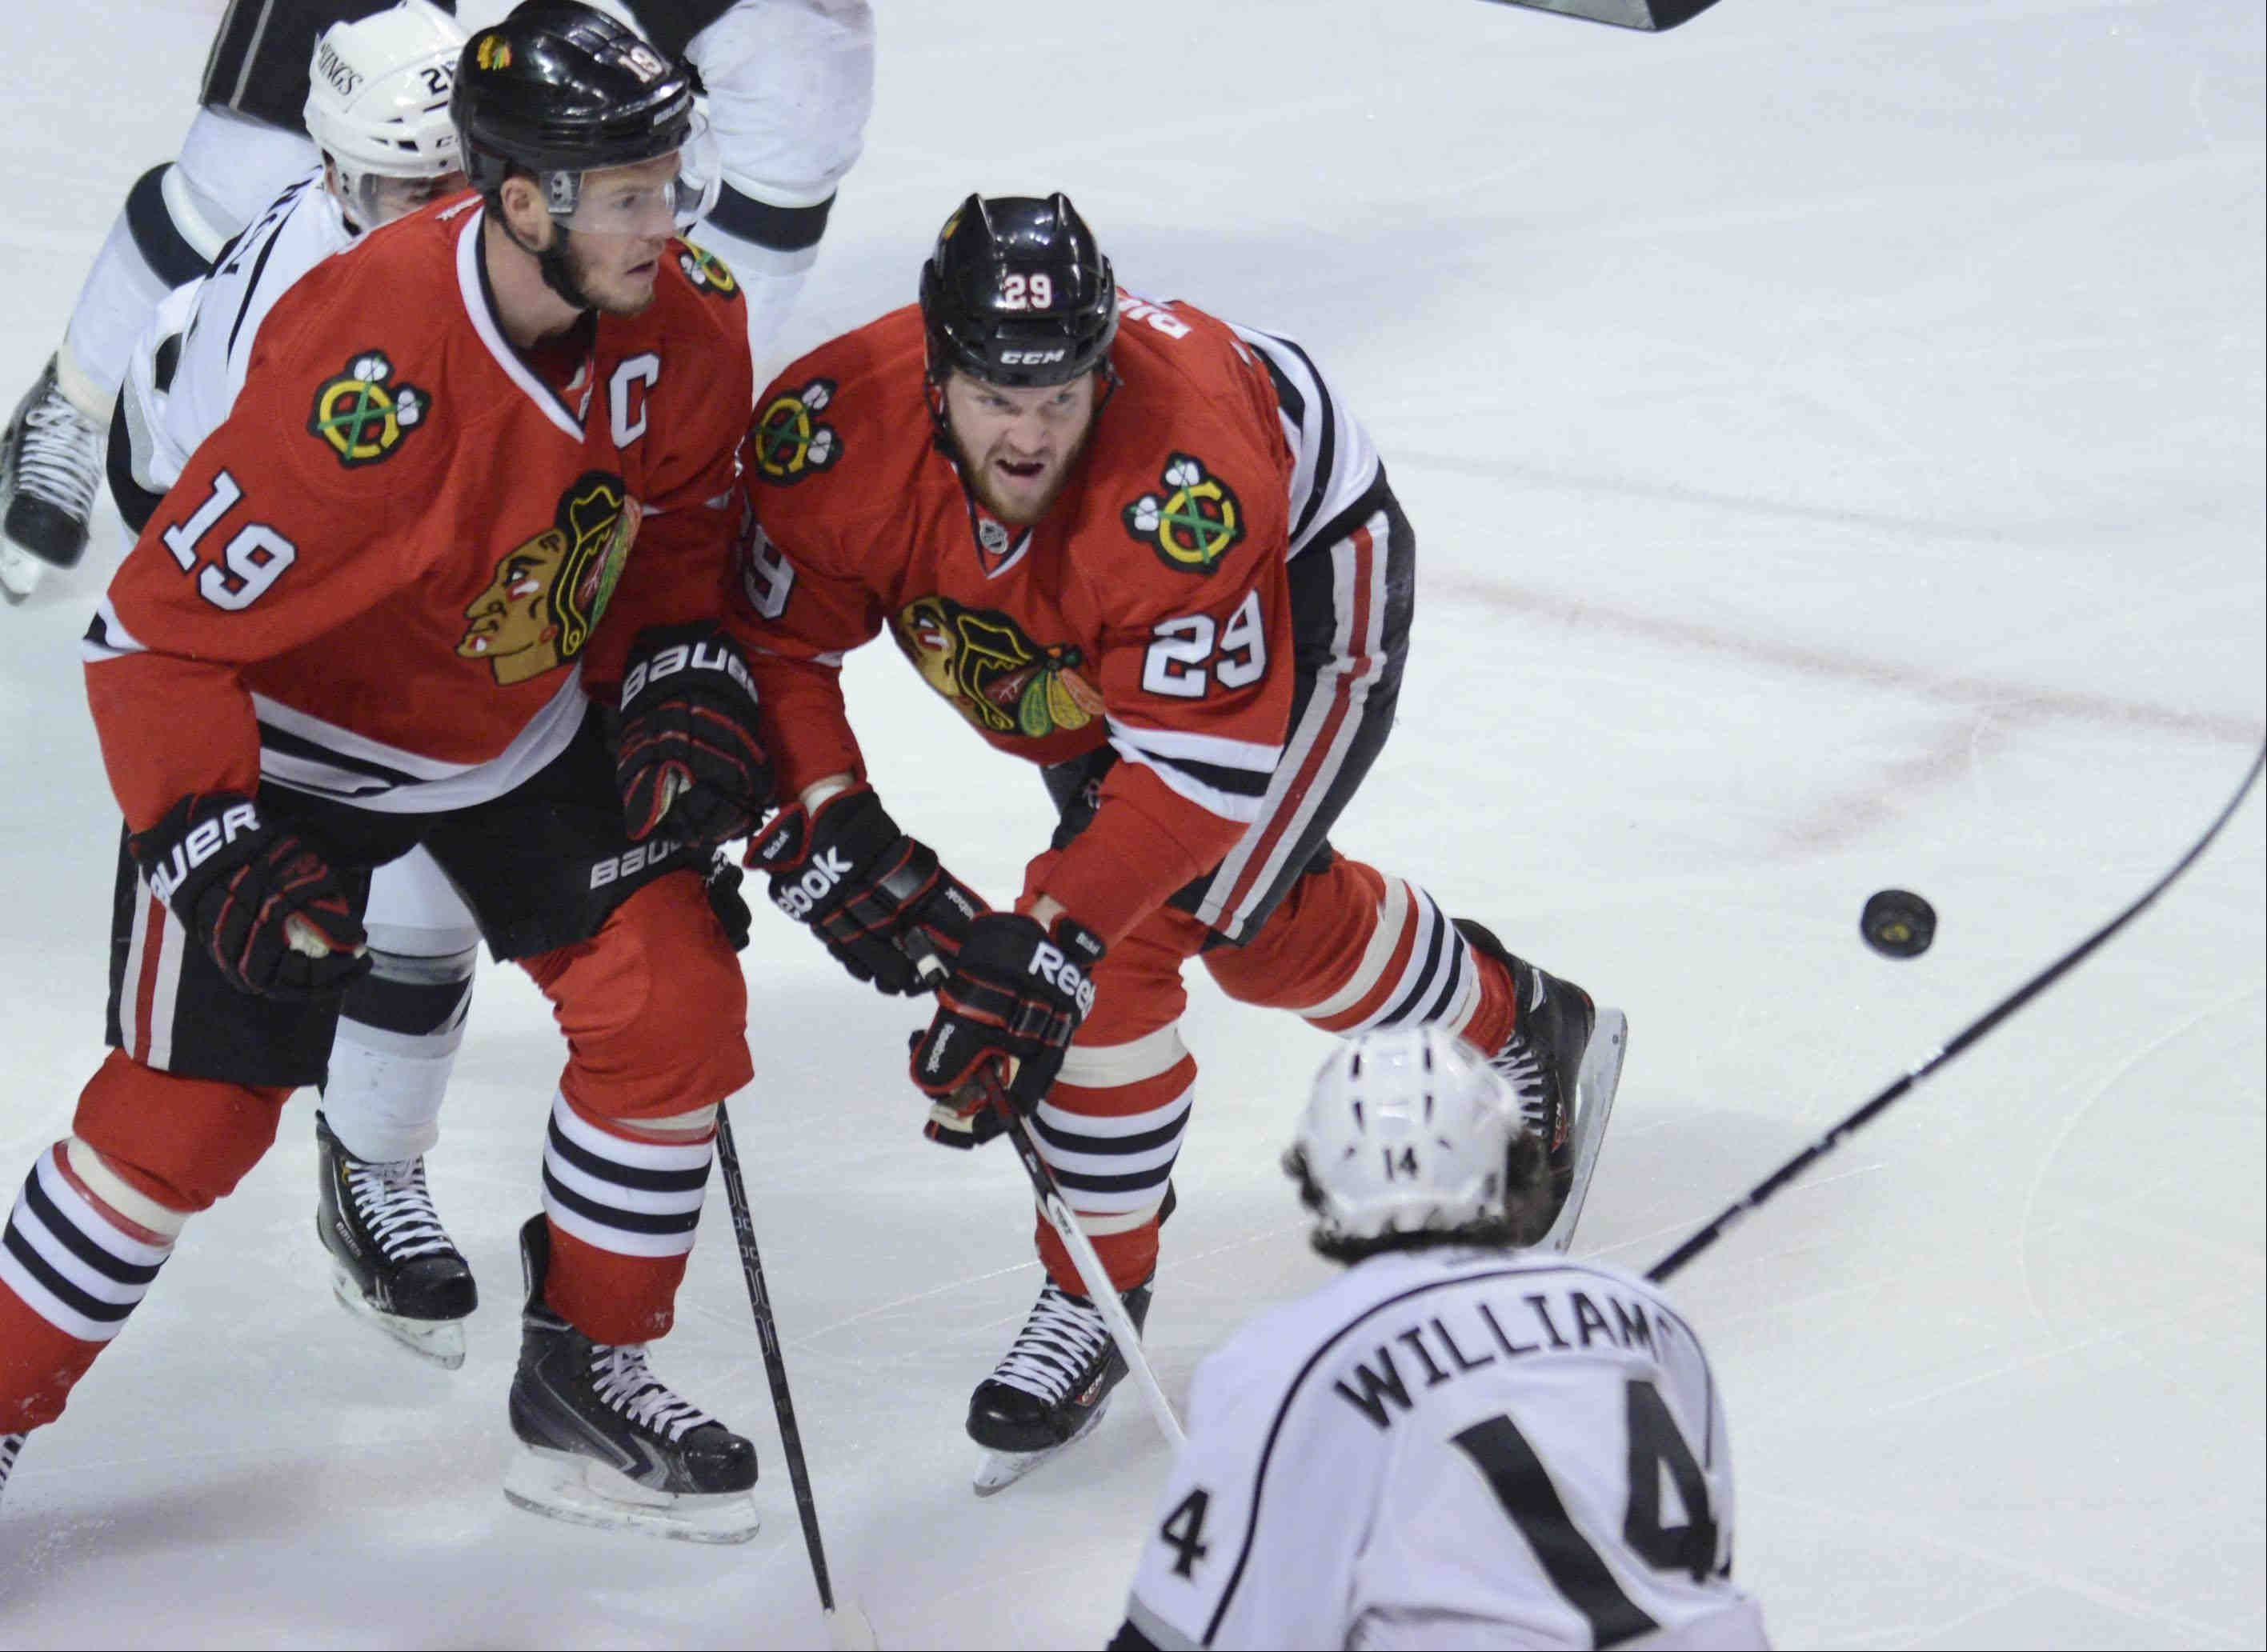 Forward-thinking Bickell continues to produce